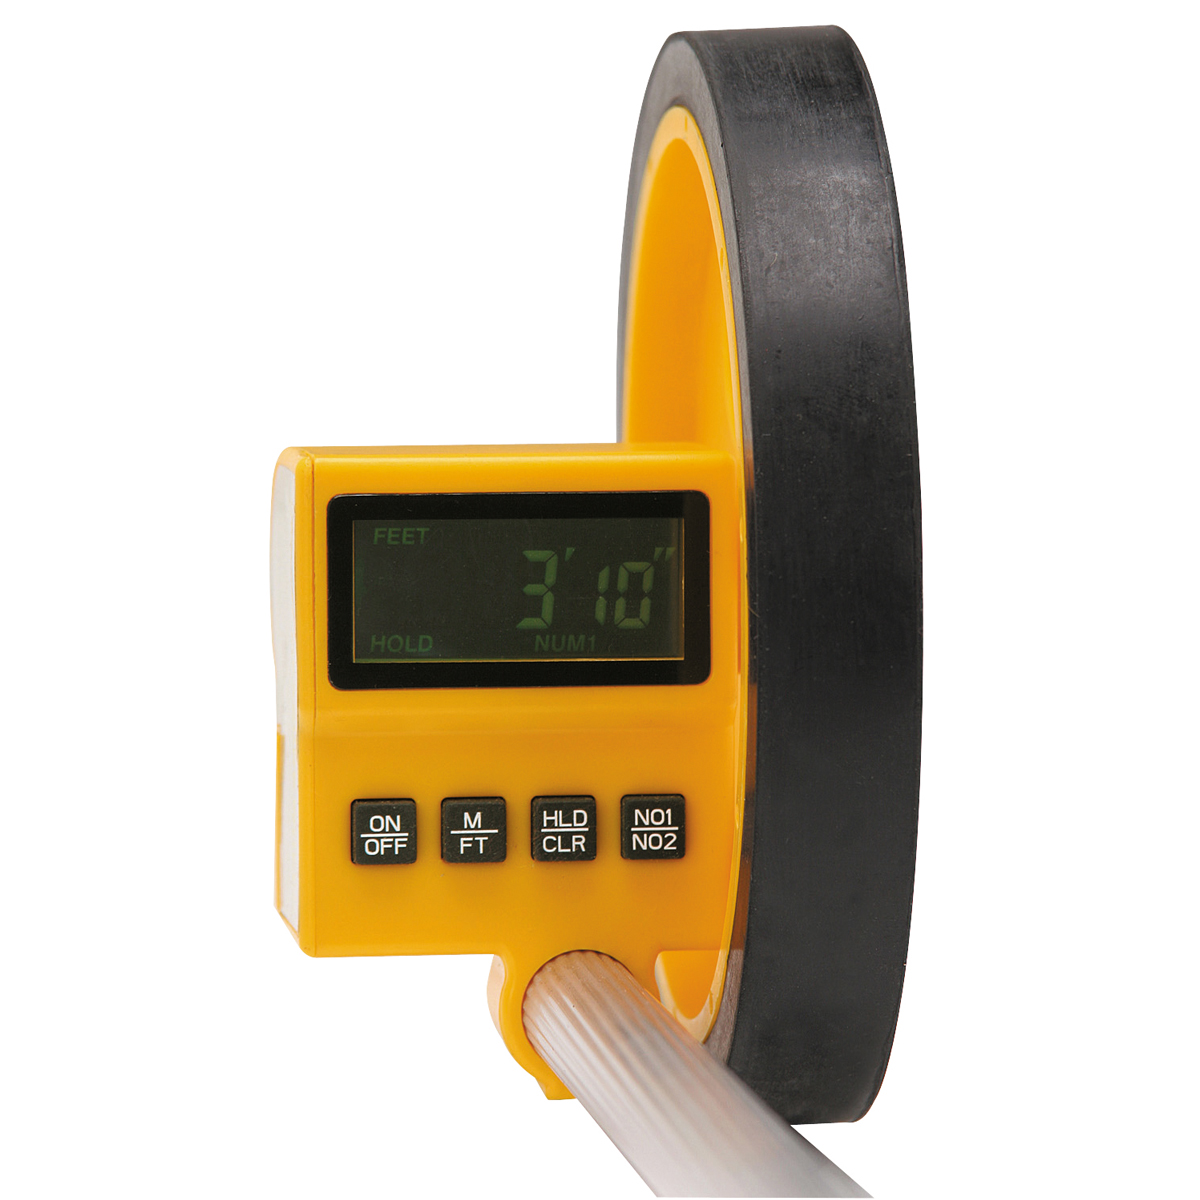 Electronic Measuring Devices Measure : Ft meter digital measuring wheel